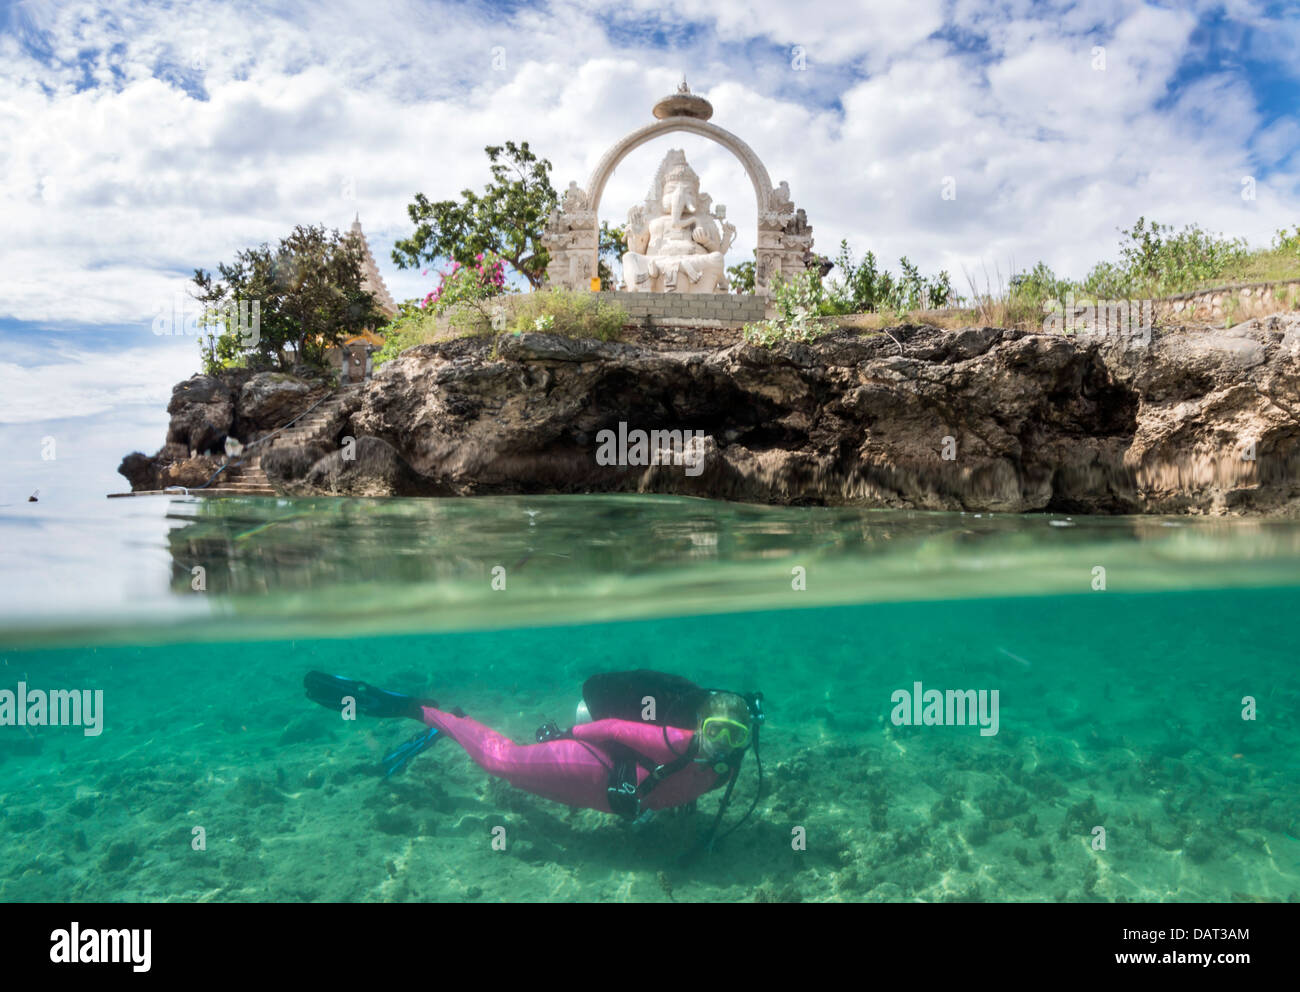 Split level view of blonde female diver exploring underwater alongside tropical island with temple in the background - Stock Image